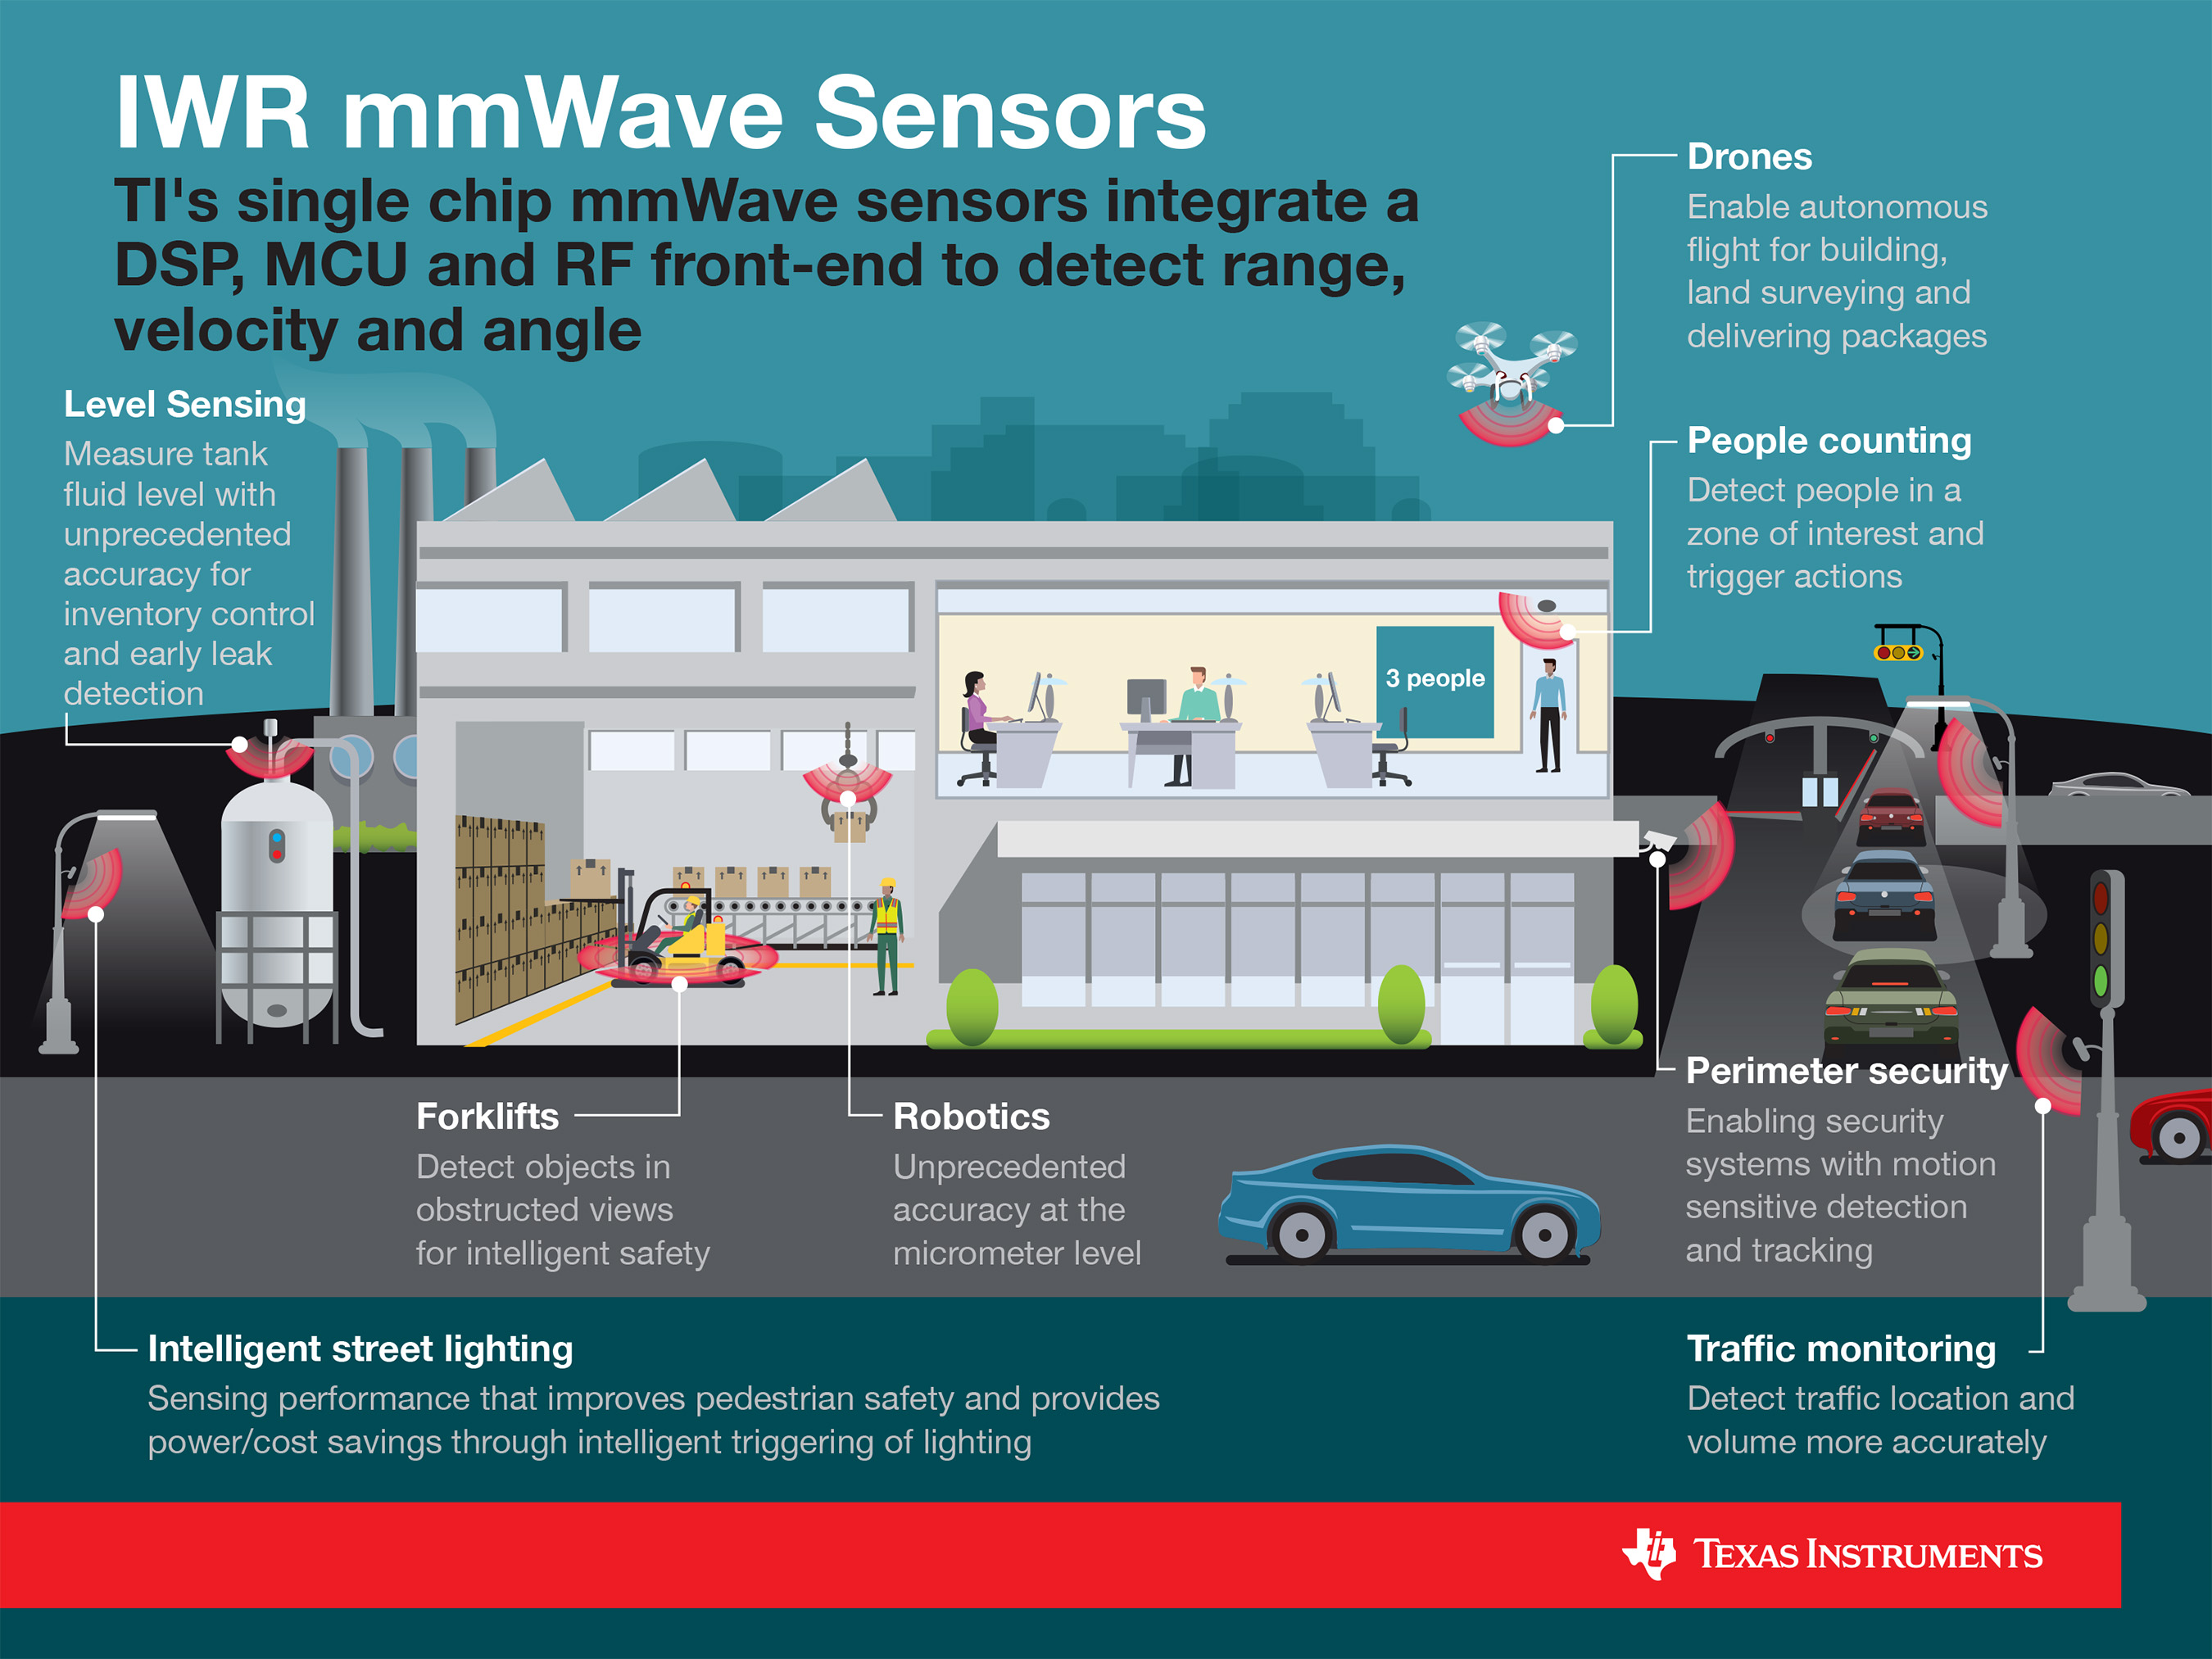 TI's IWR1x single-chip mmWave sensor family detects range, velocity and angle of objects in multiple markets in the industrial space.